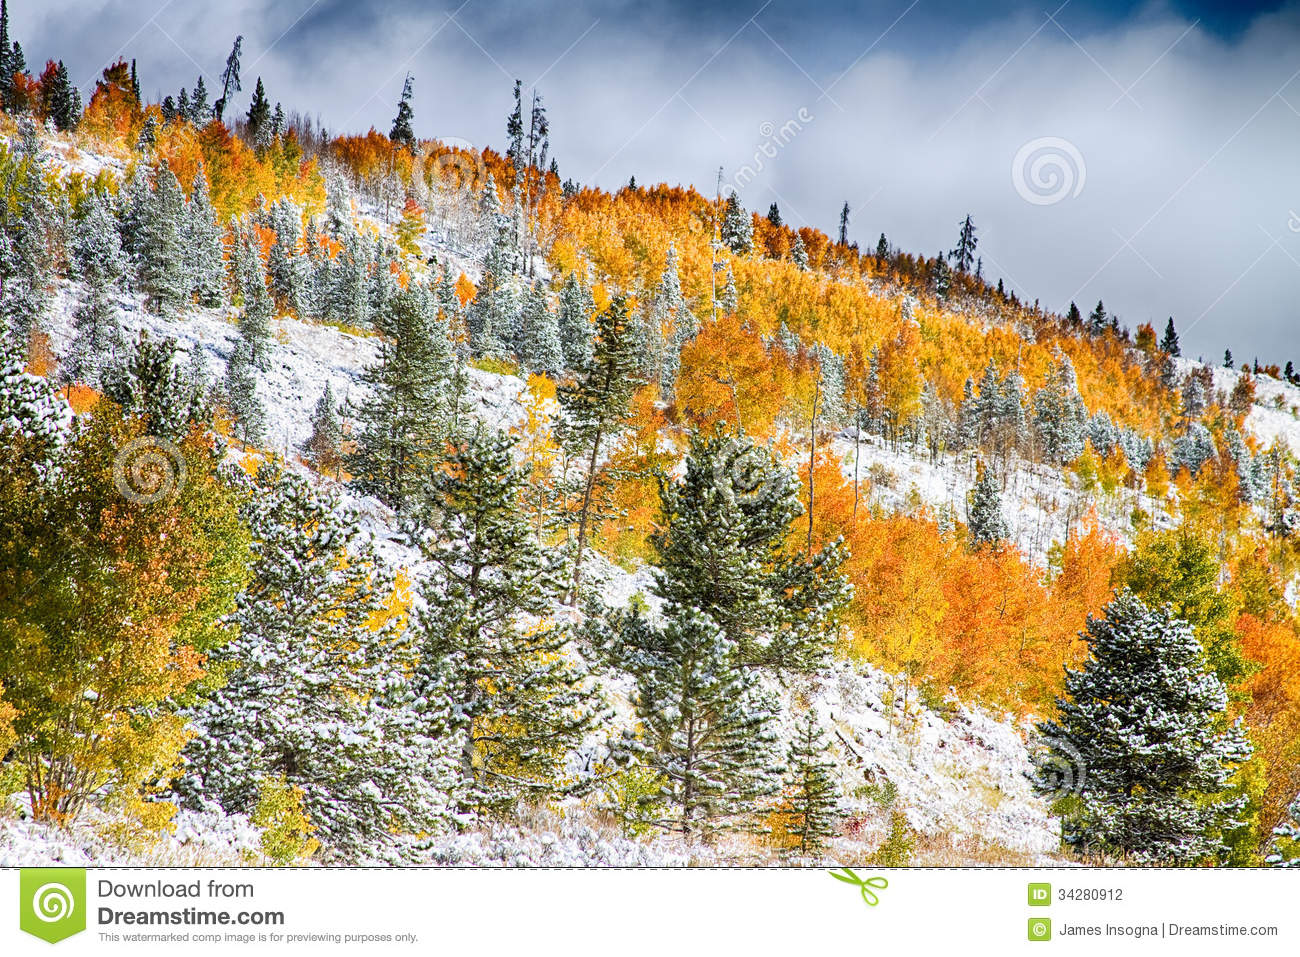 A Snowy Fall Day wallpaper | nature and landscape | Wallpaper Better